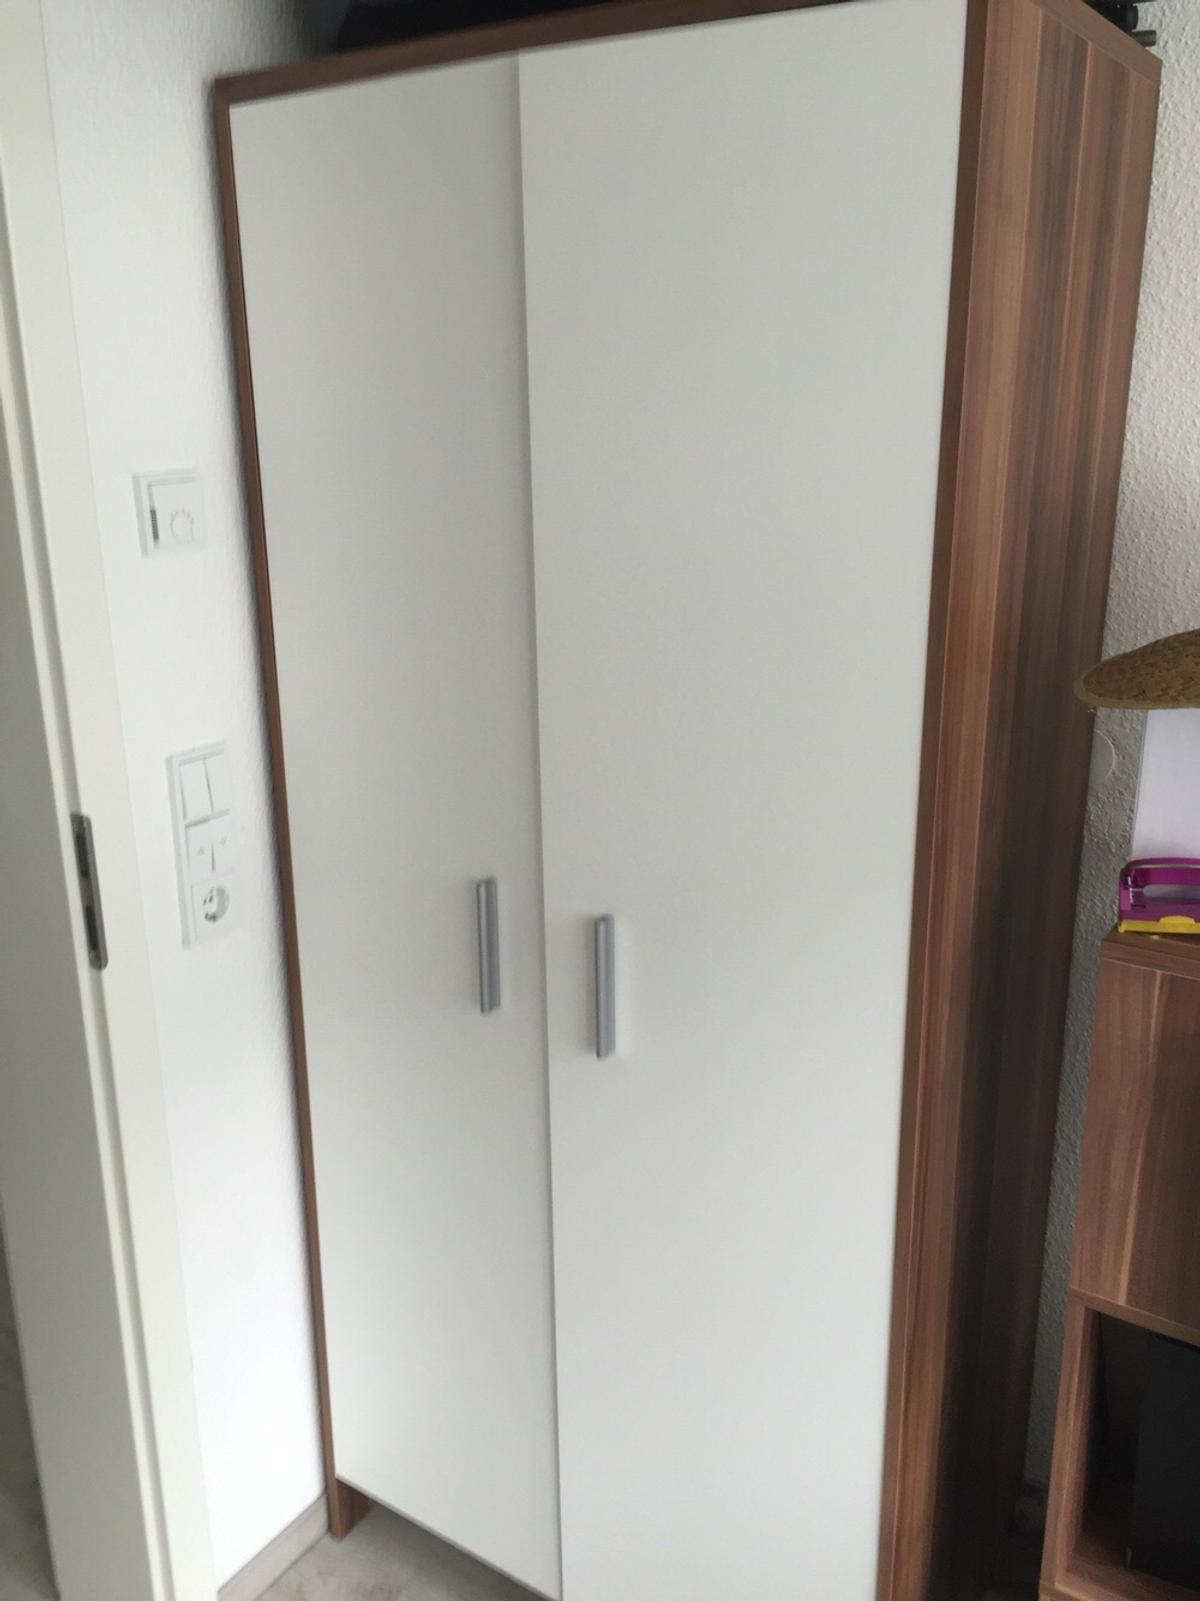 Schrank 80 Cm Breit 190 Cm Hoch In 26123 Oldenburg For 25 00 For Sale Shpock